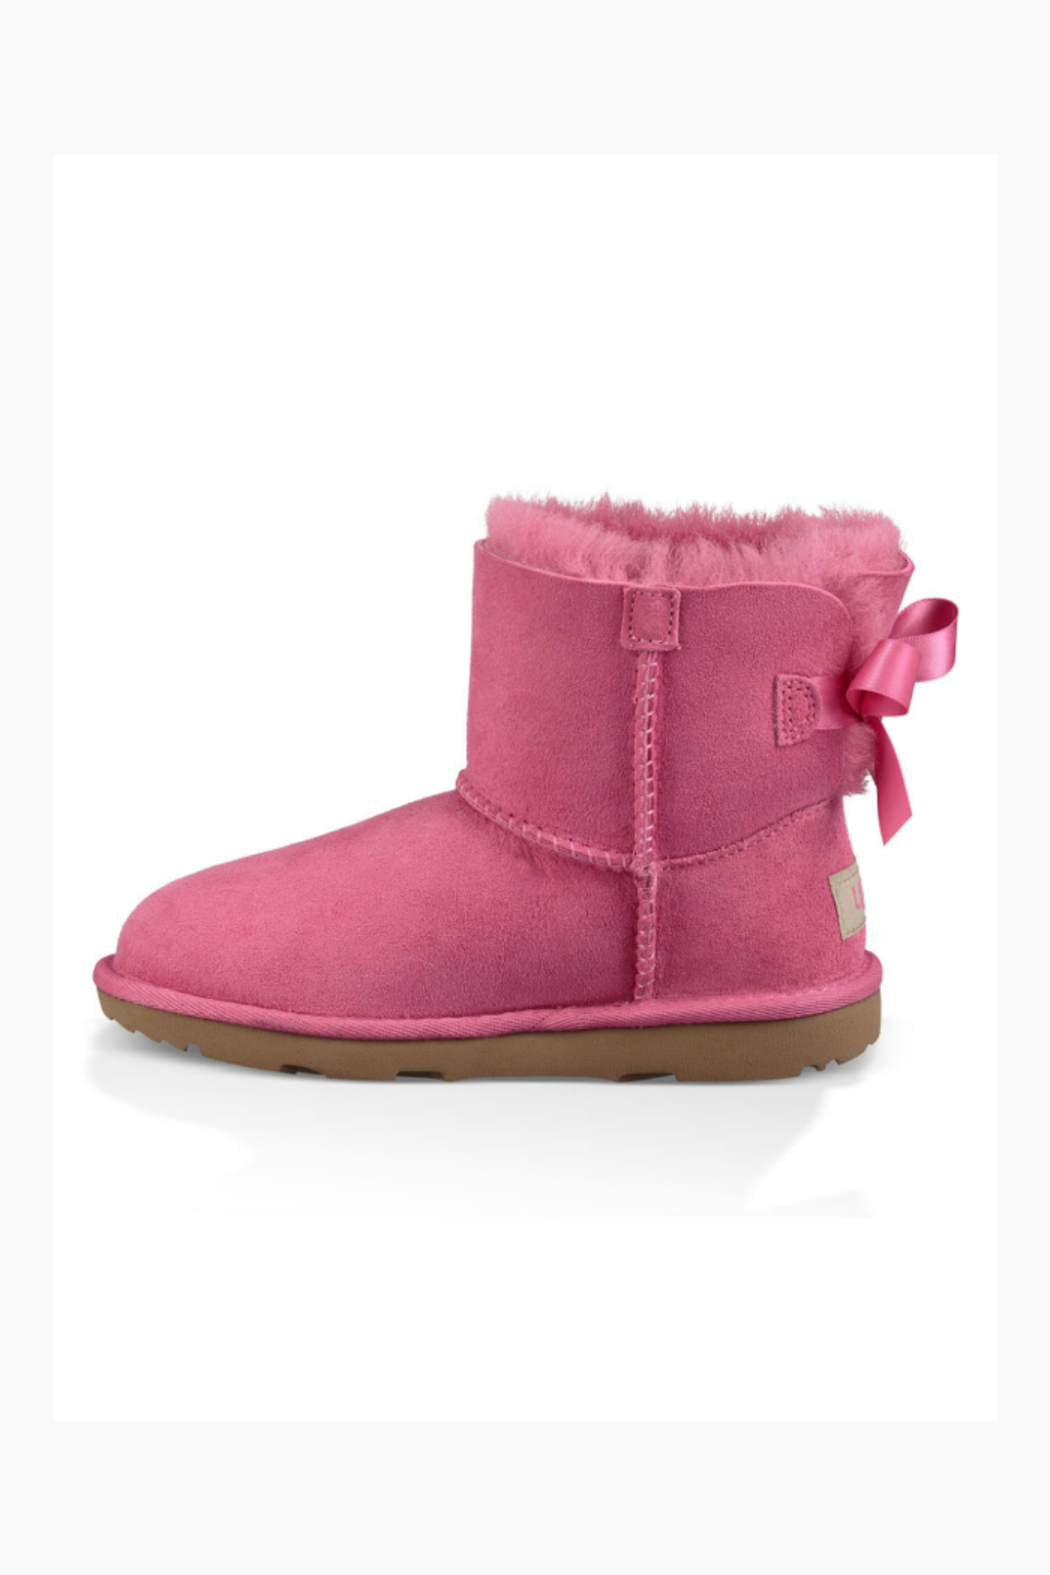 Ugg UGG KIDS MINI BAILEY BOW II - Front Full Image